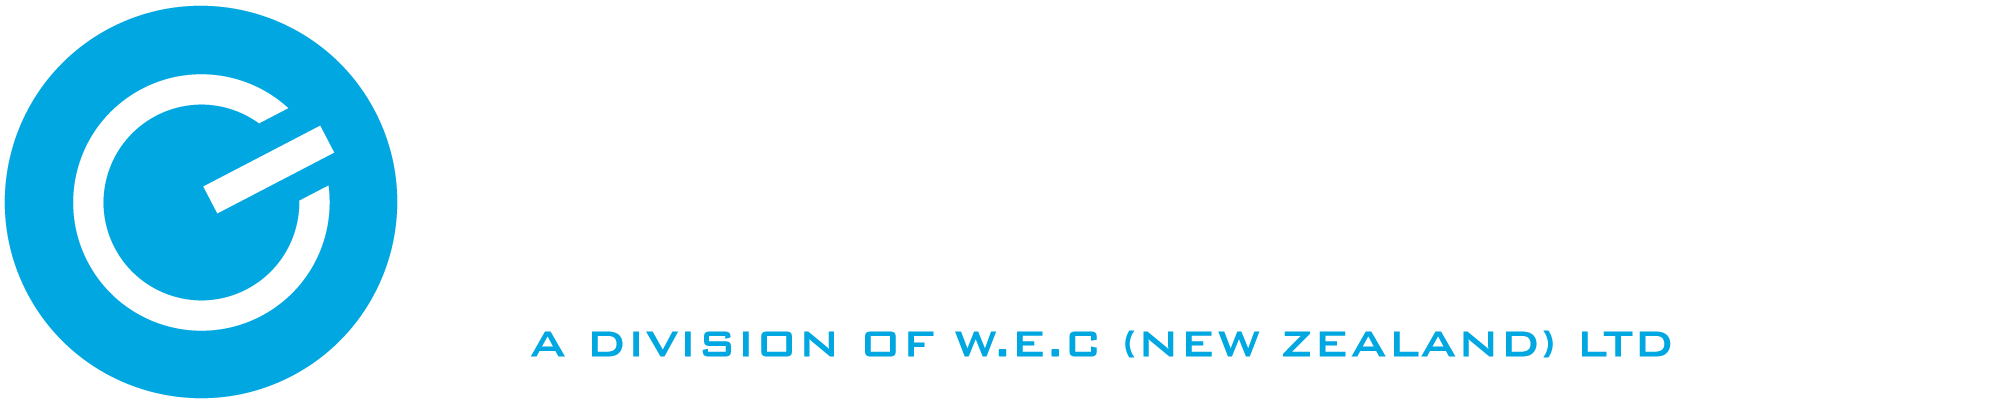 Coastline-Electrical-Logo-stack.png